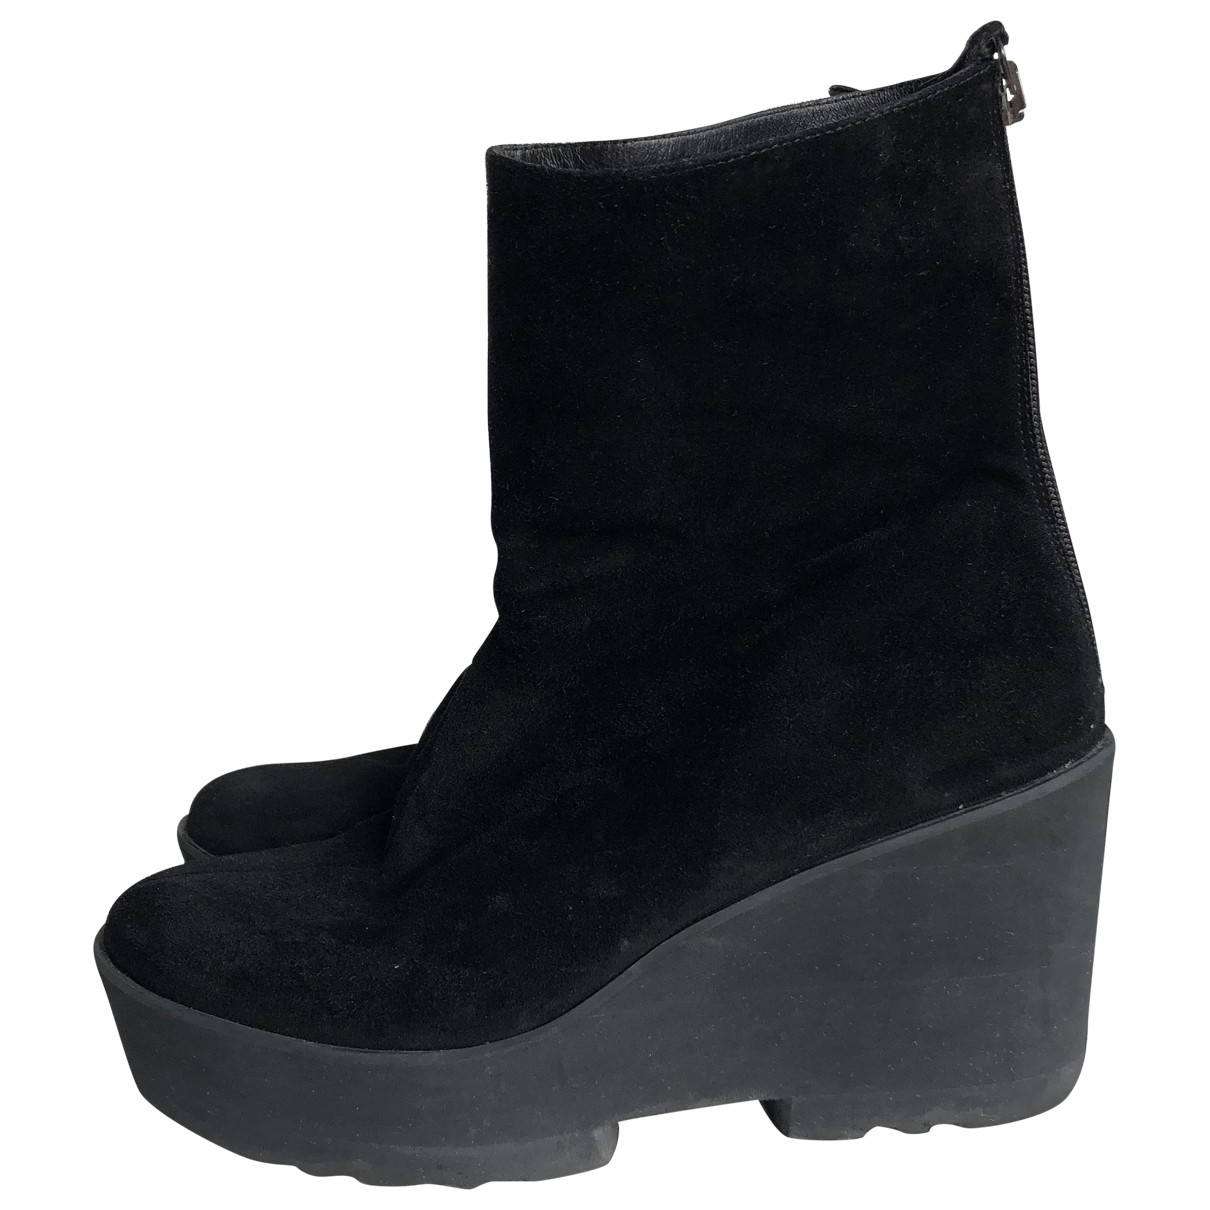 Paloma Barcelo \N Black Suede Ankle boots for Women 41 EU